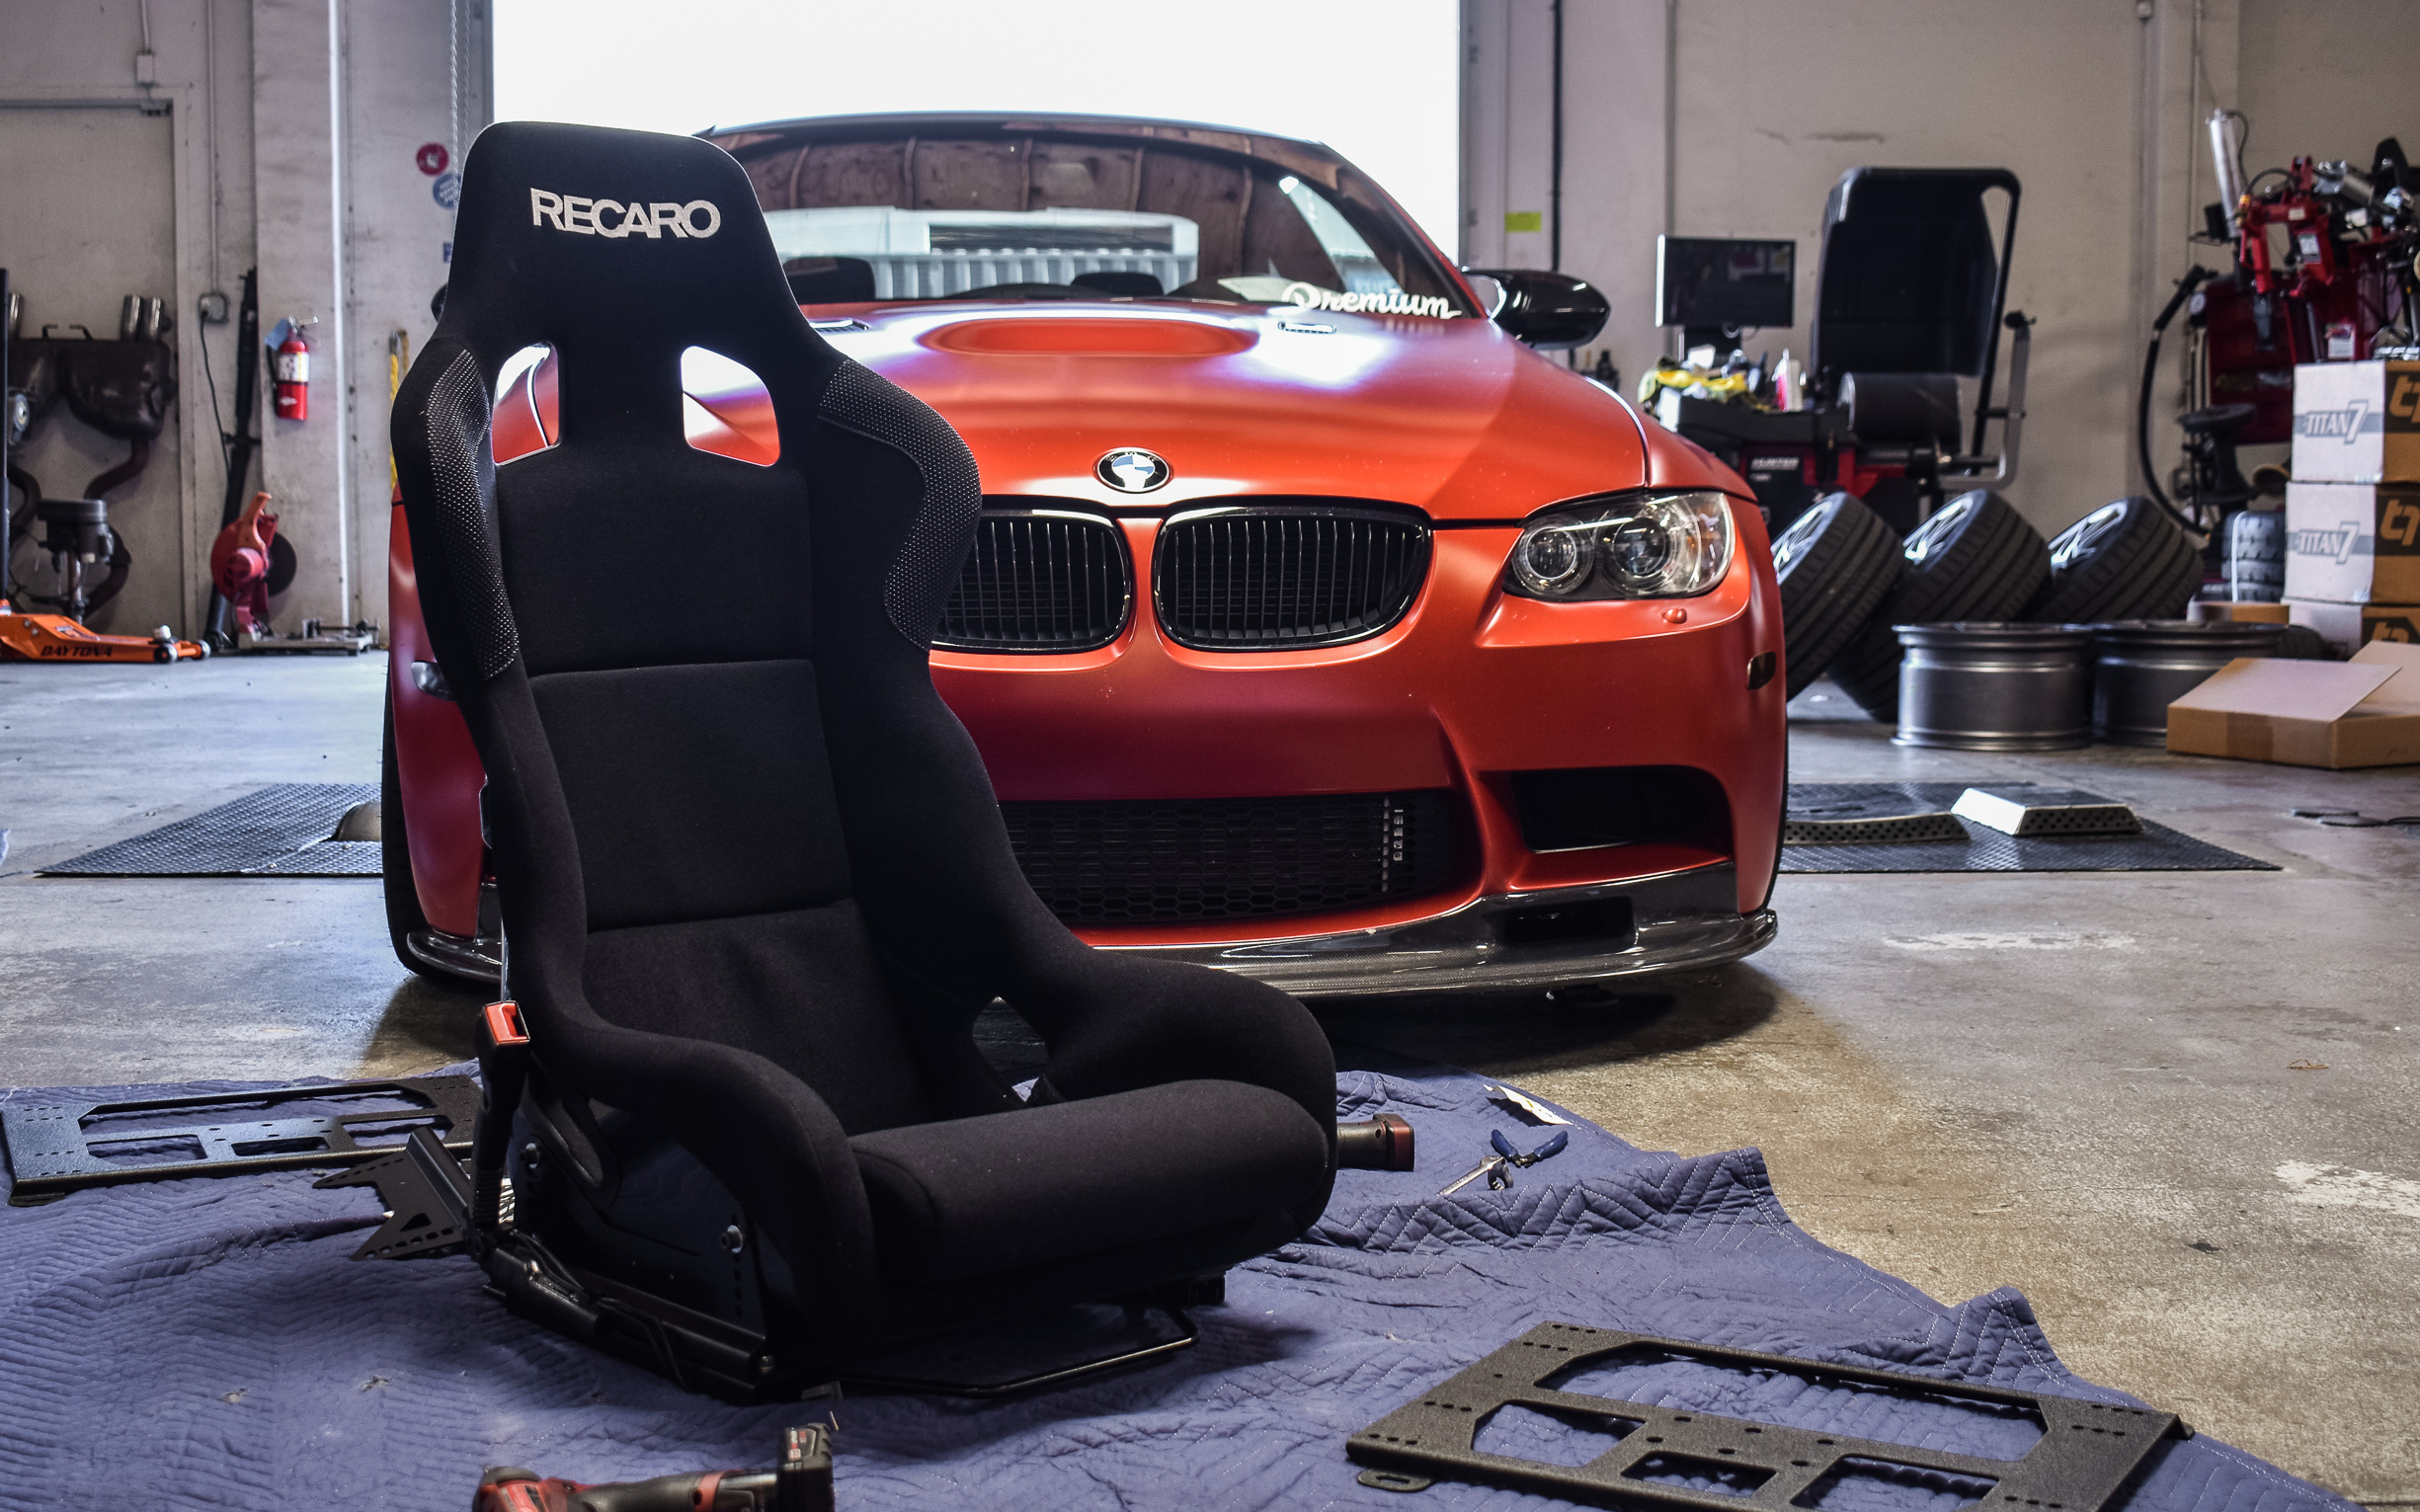 2011 Frozen Red E92 M3 - Recaro Profi XL SPG